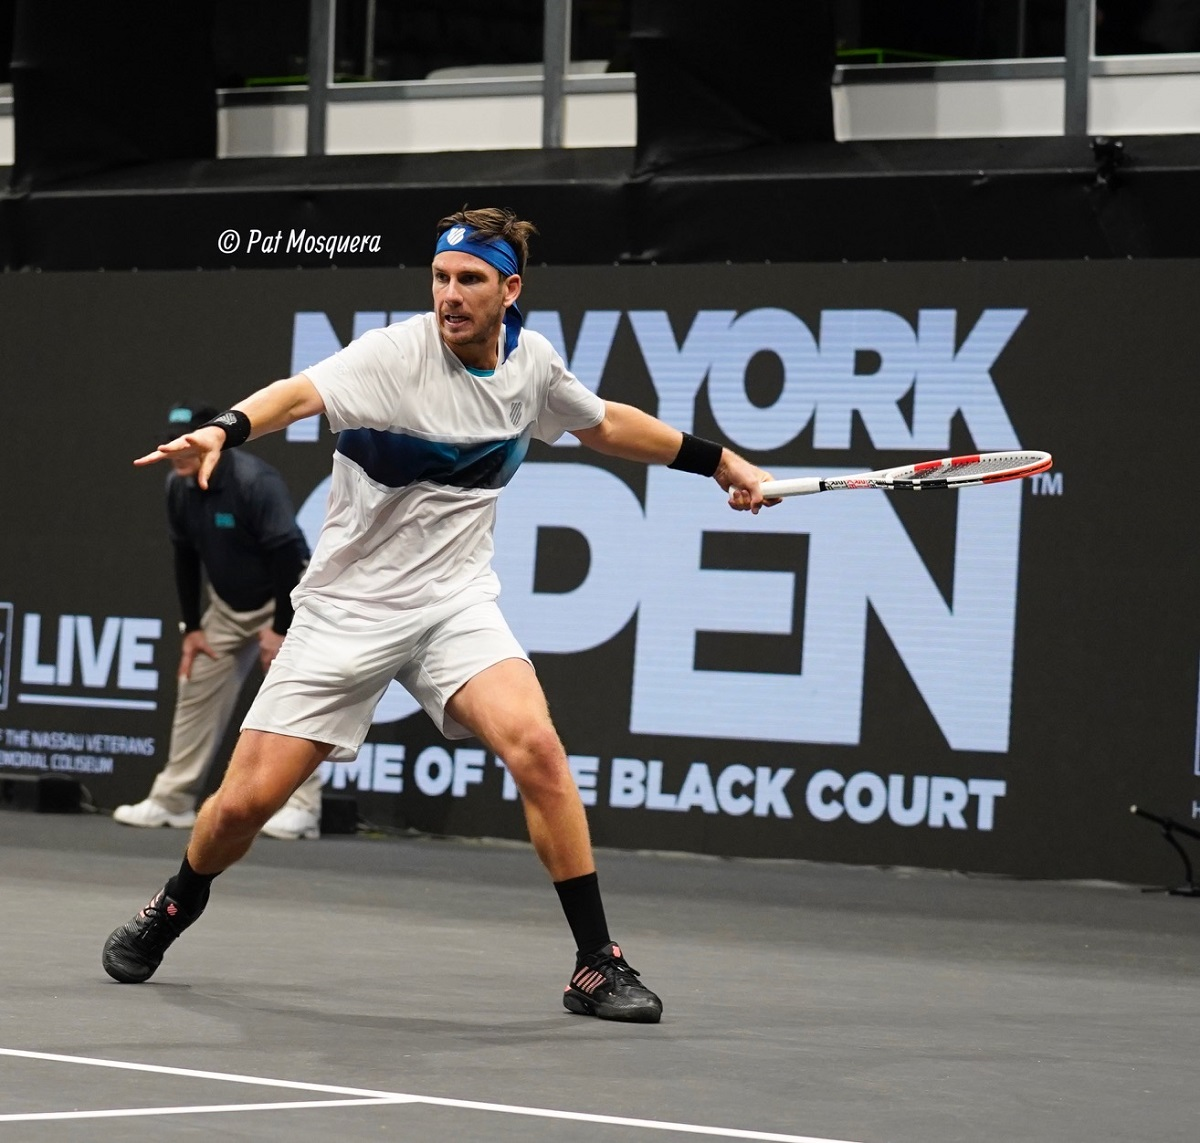 Cameron Norrie, the seventh seed, defeated Long Island native Brian Shi in the New York Open first round on Tuesday night.